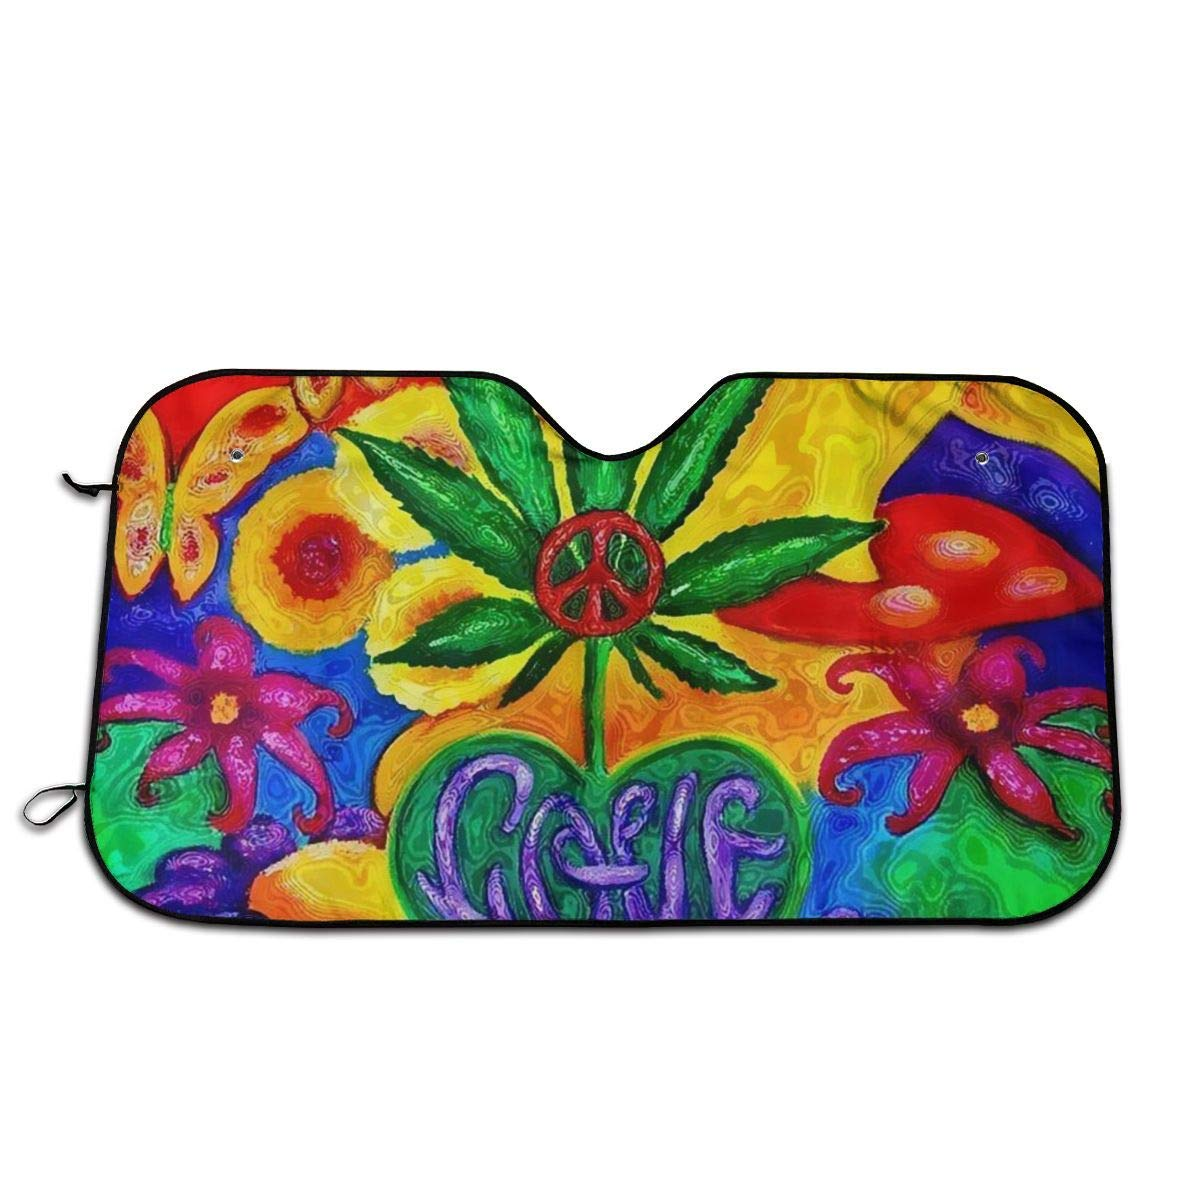 Hemp and Flower Paintings Home Universal Front Auto Car Windshield Sun Shade Sun Visor Car Sun Shade Keep Vehicle Accessories,Size 55x30 Inch by huagu